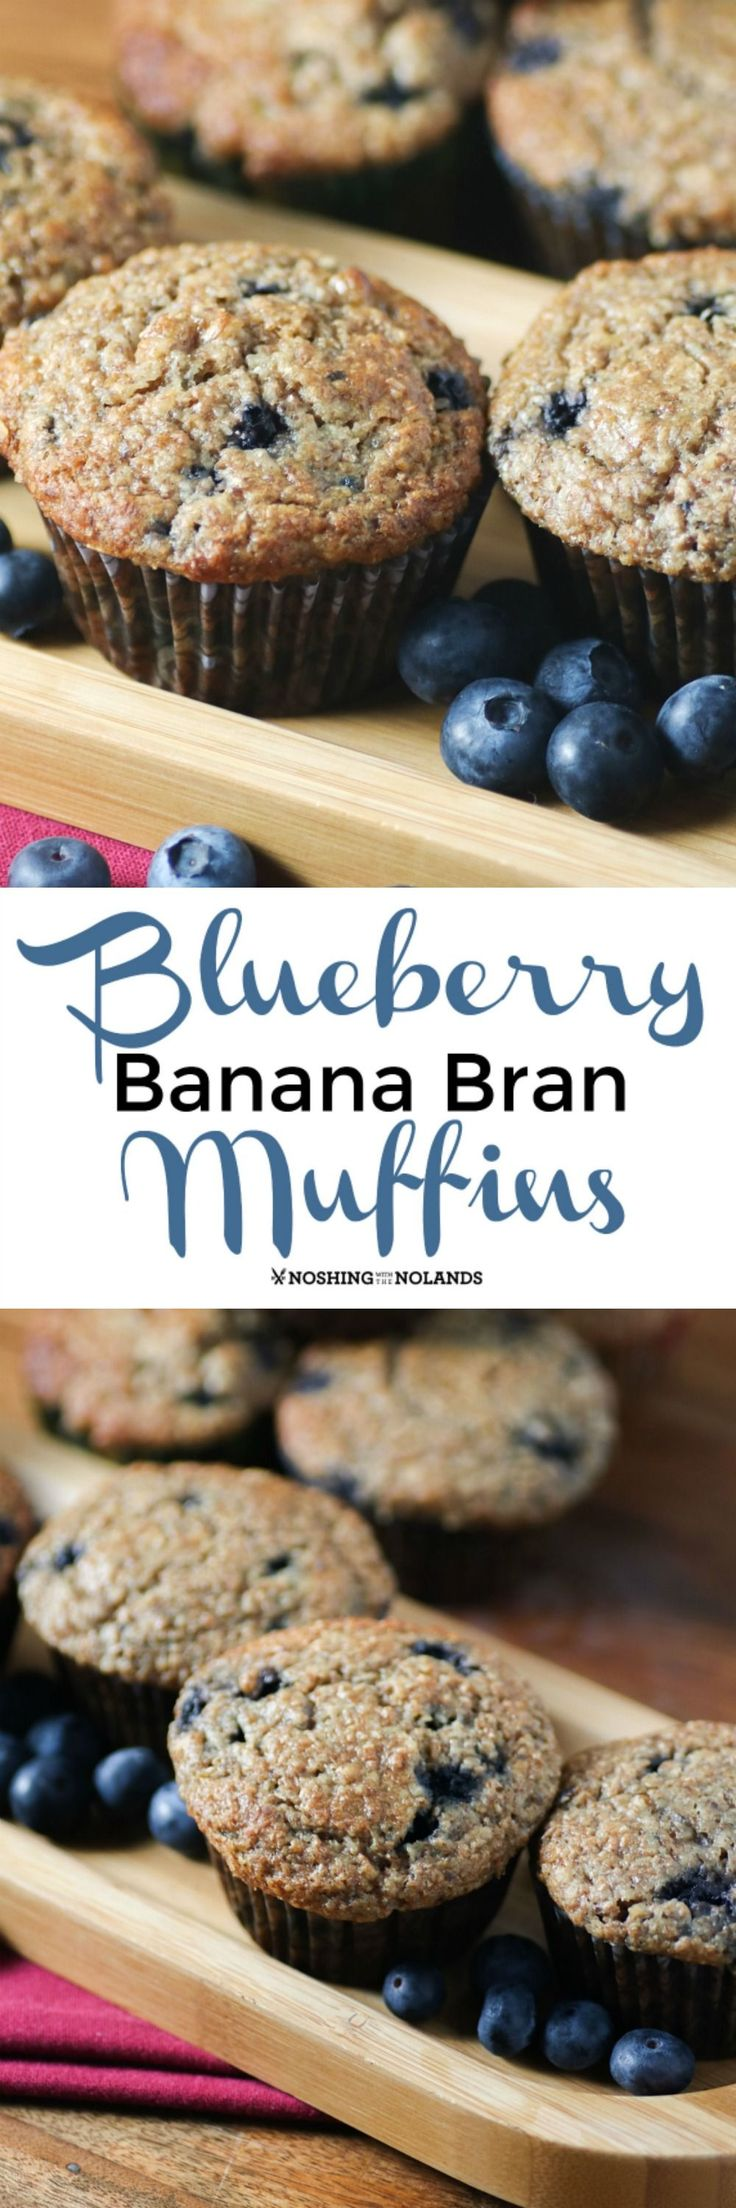 Blueberry Banana Bran Muffins by Noshing With The Nolands will have you start off the New Year deliciously!!